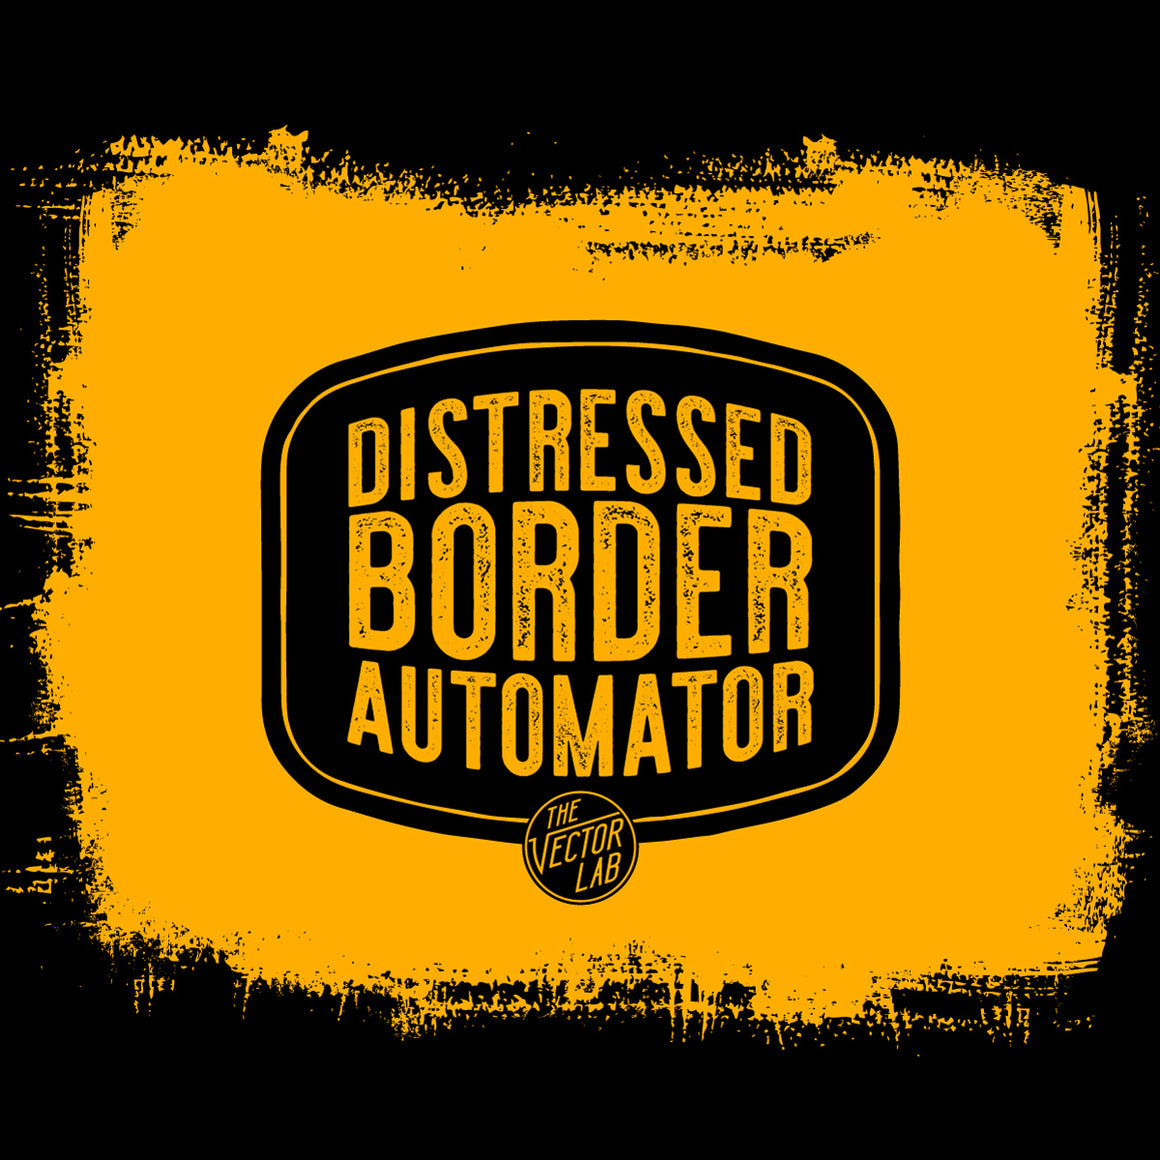 Distressed Border Automator